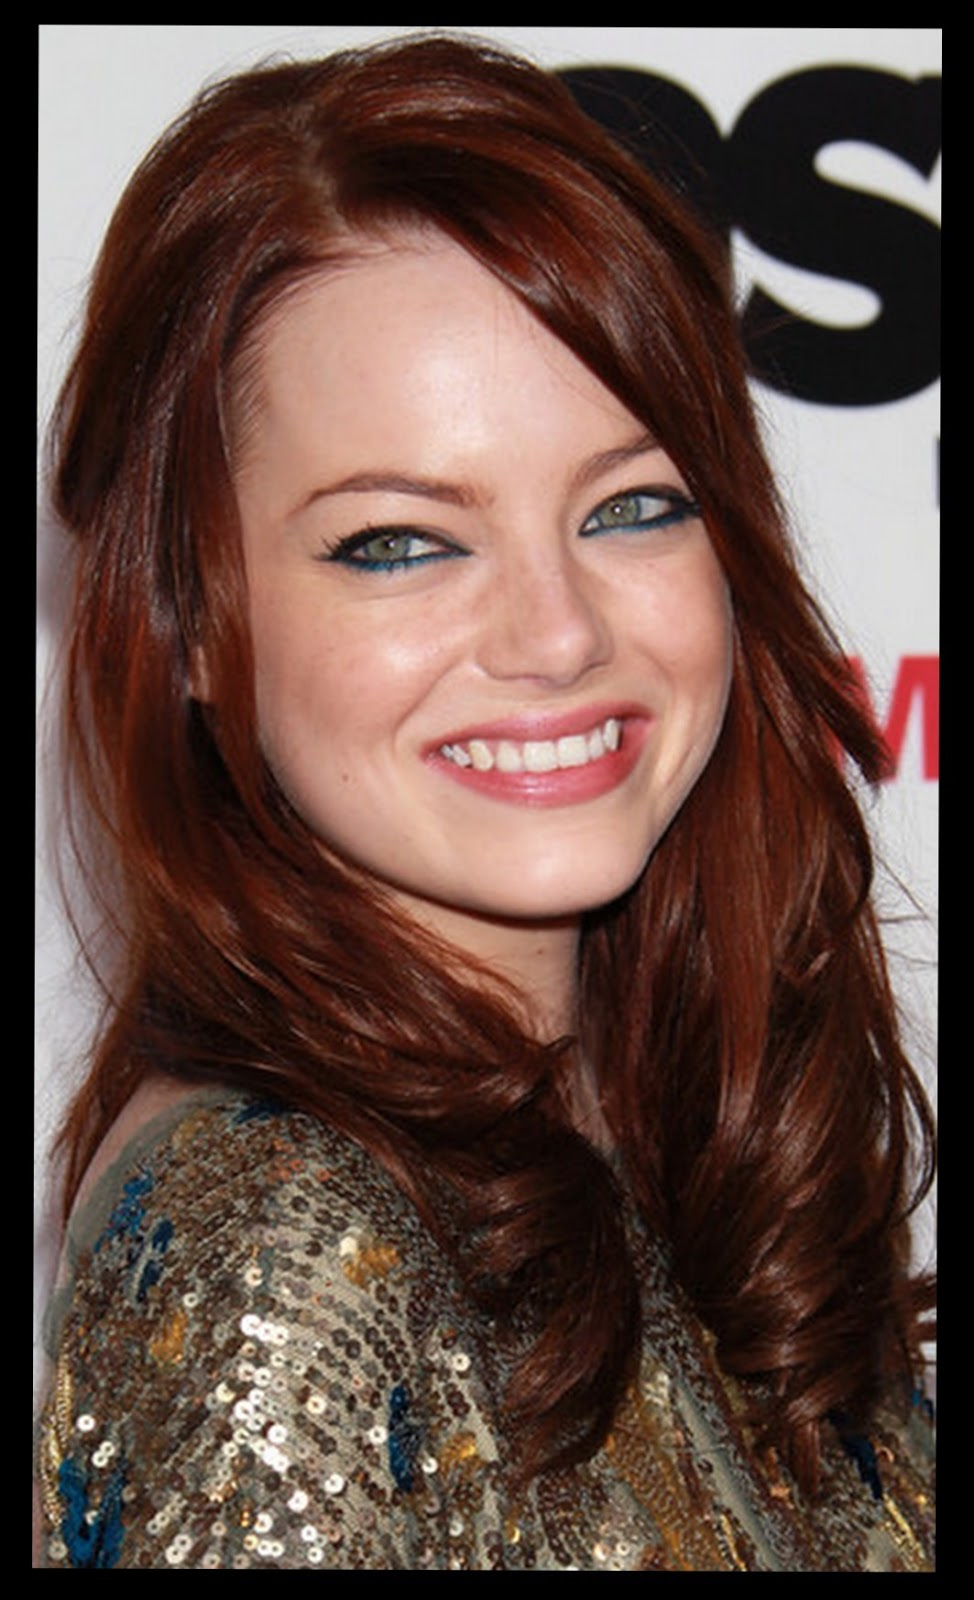 Emma Stone: Emma Stone Red Hair | 974 x 1600 jpeg 188kB